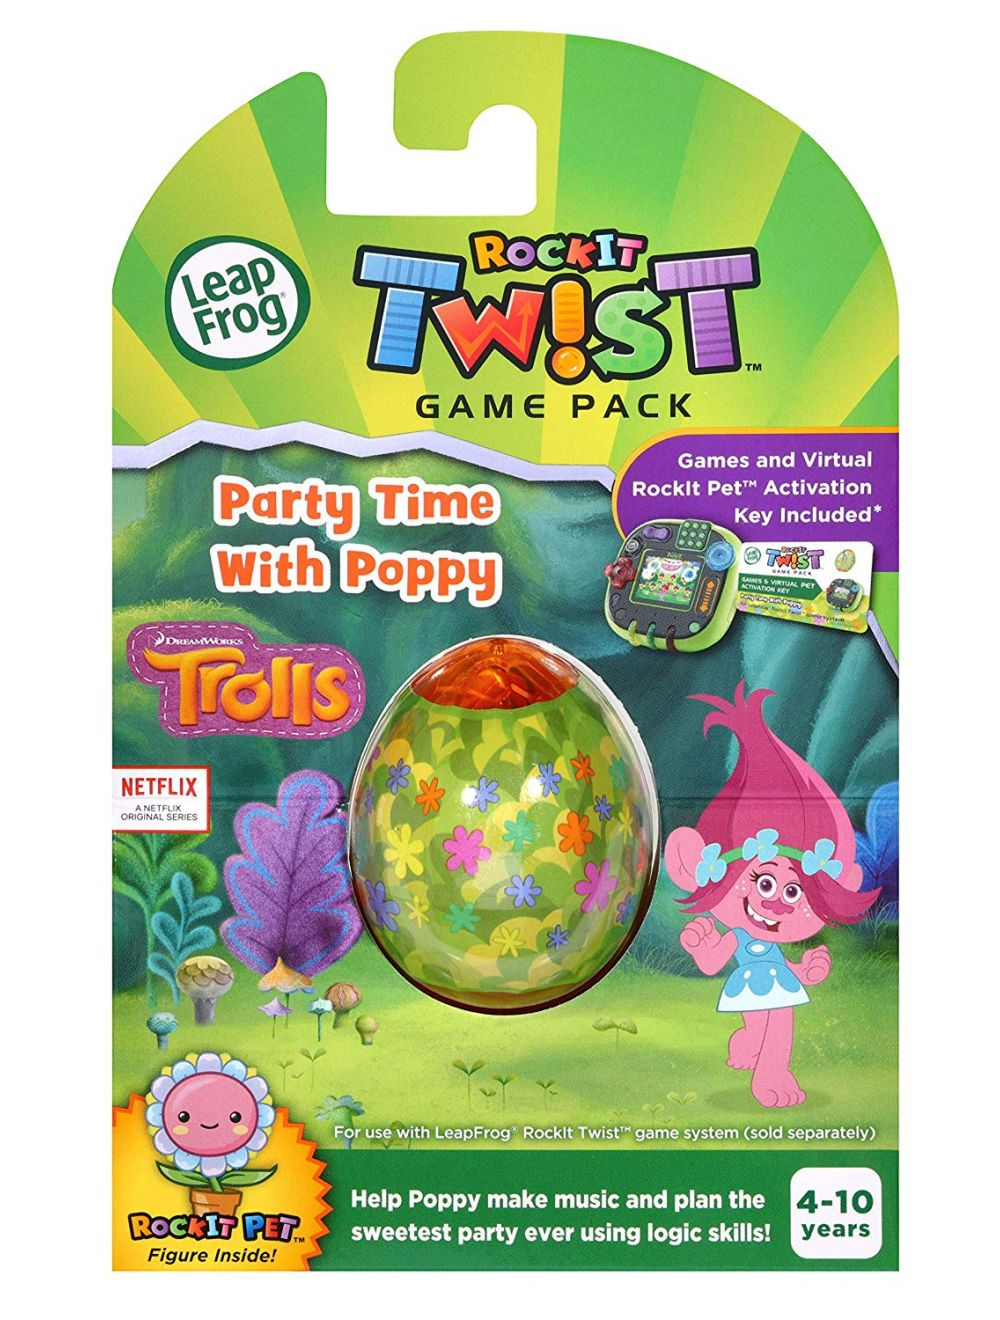 Leapfrog Trolls: Party Time with Poppy Game Pack